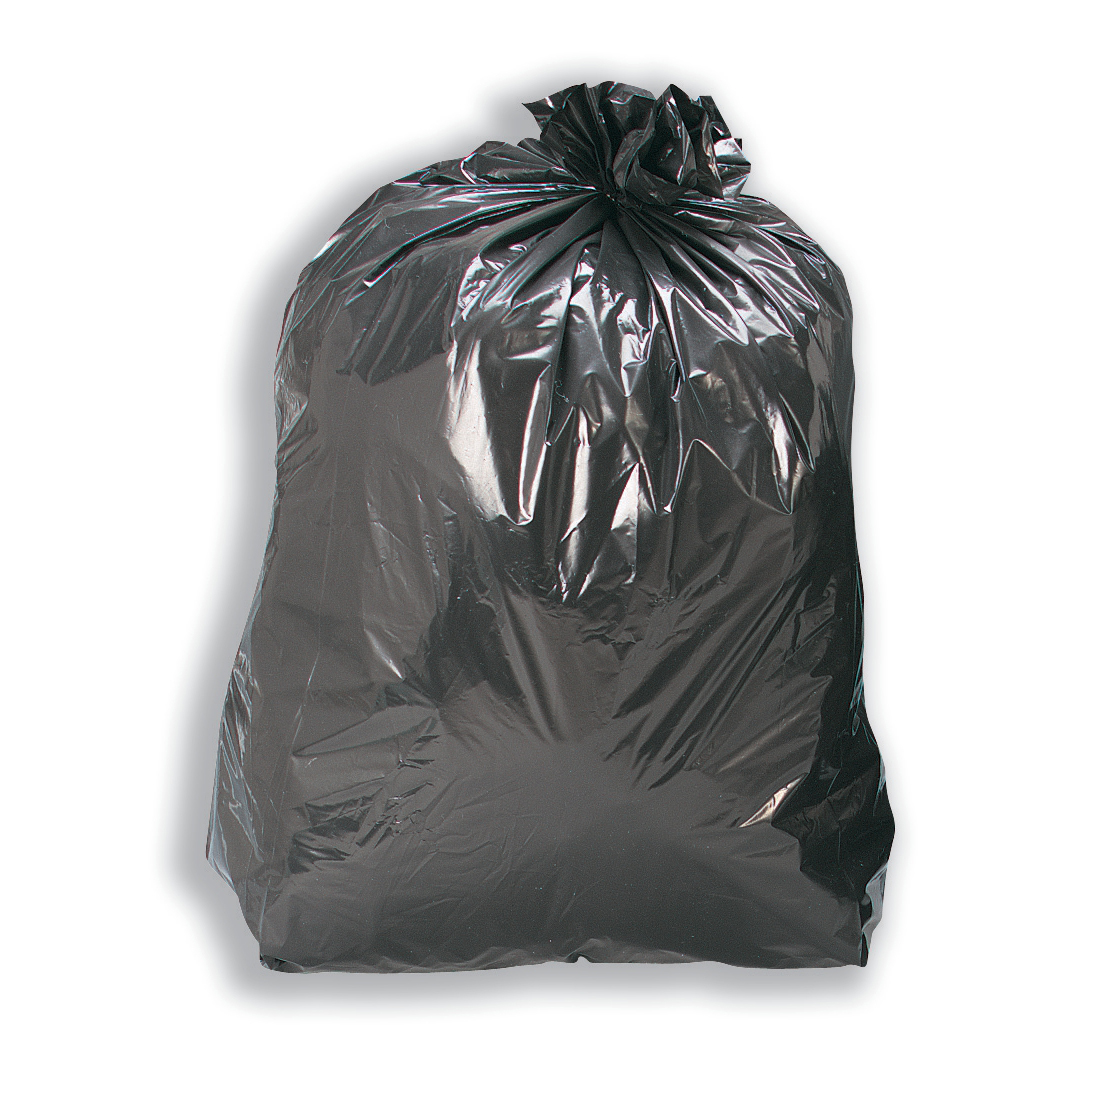 5 Star Facilities Bin Liners Recycled Medium/Heavy Duty 110Ltr Capacity W460/775xH930mm Black Pack 200